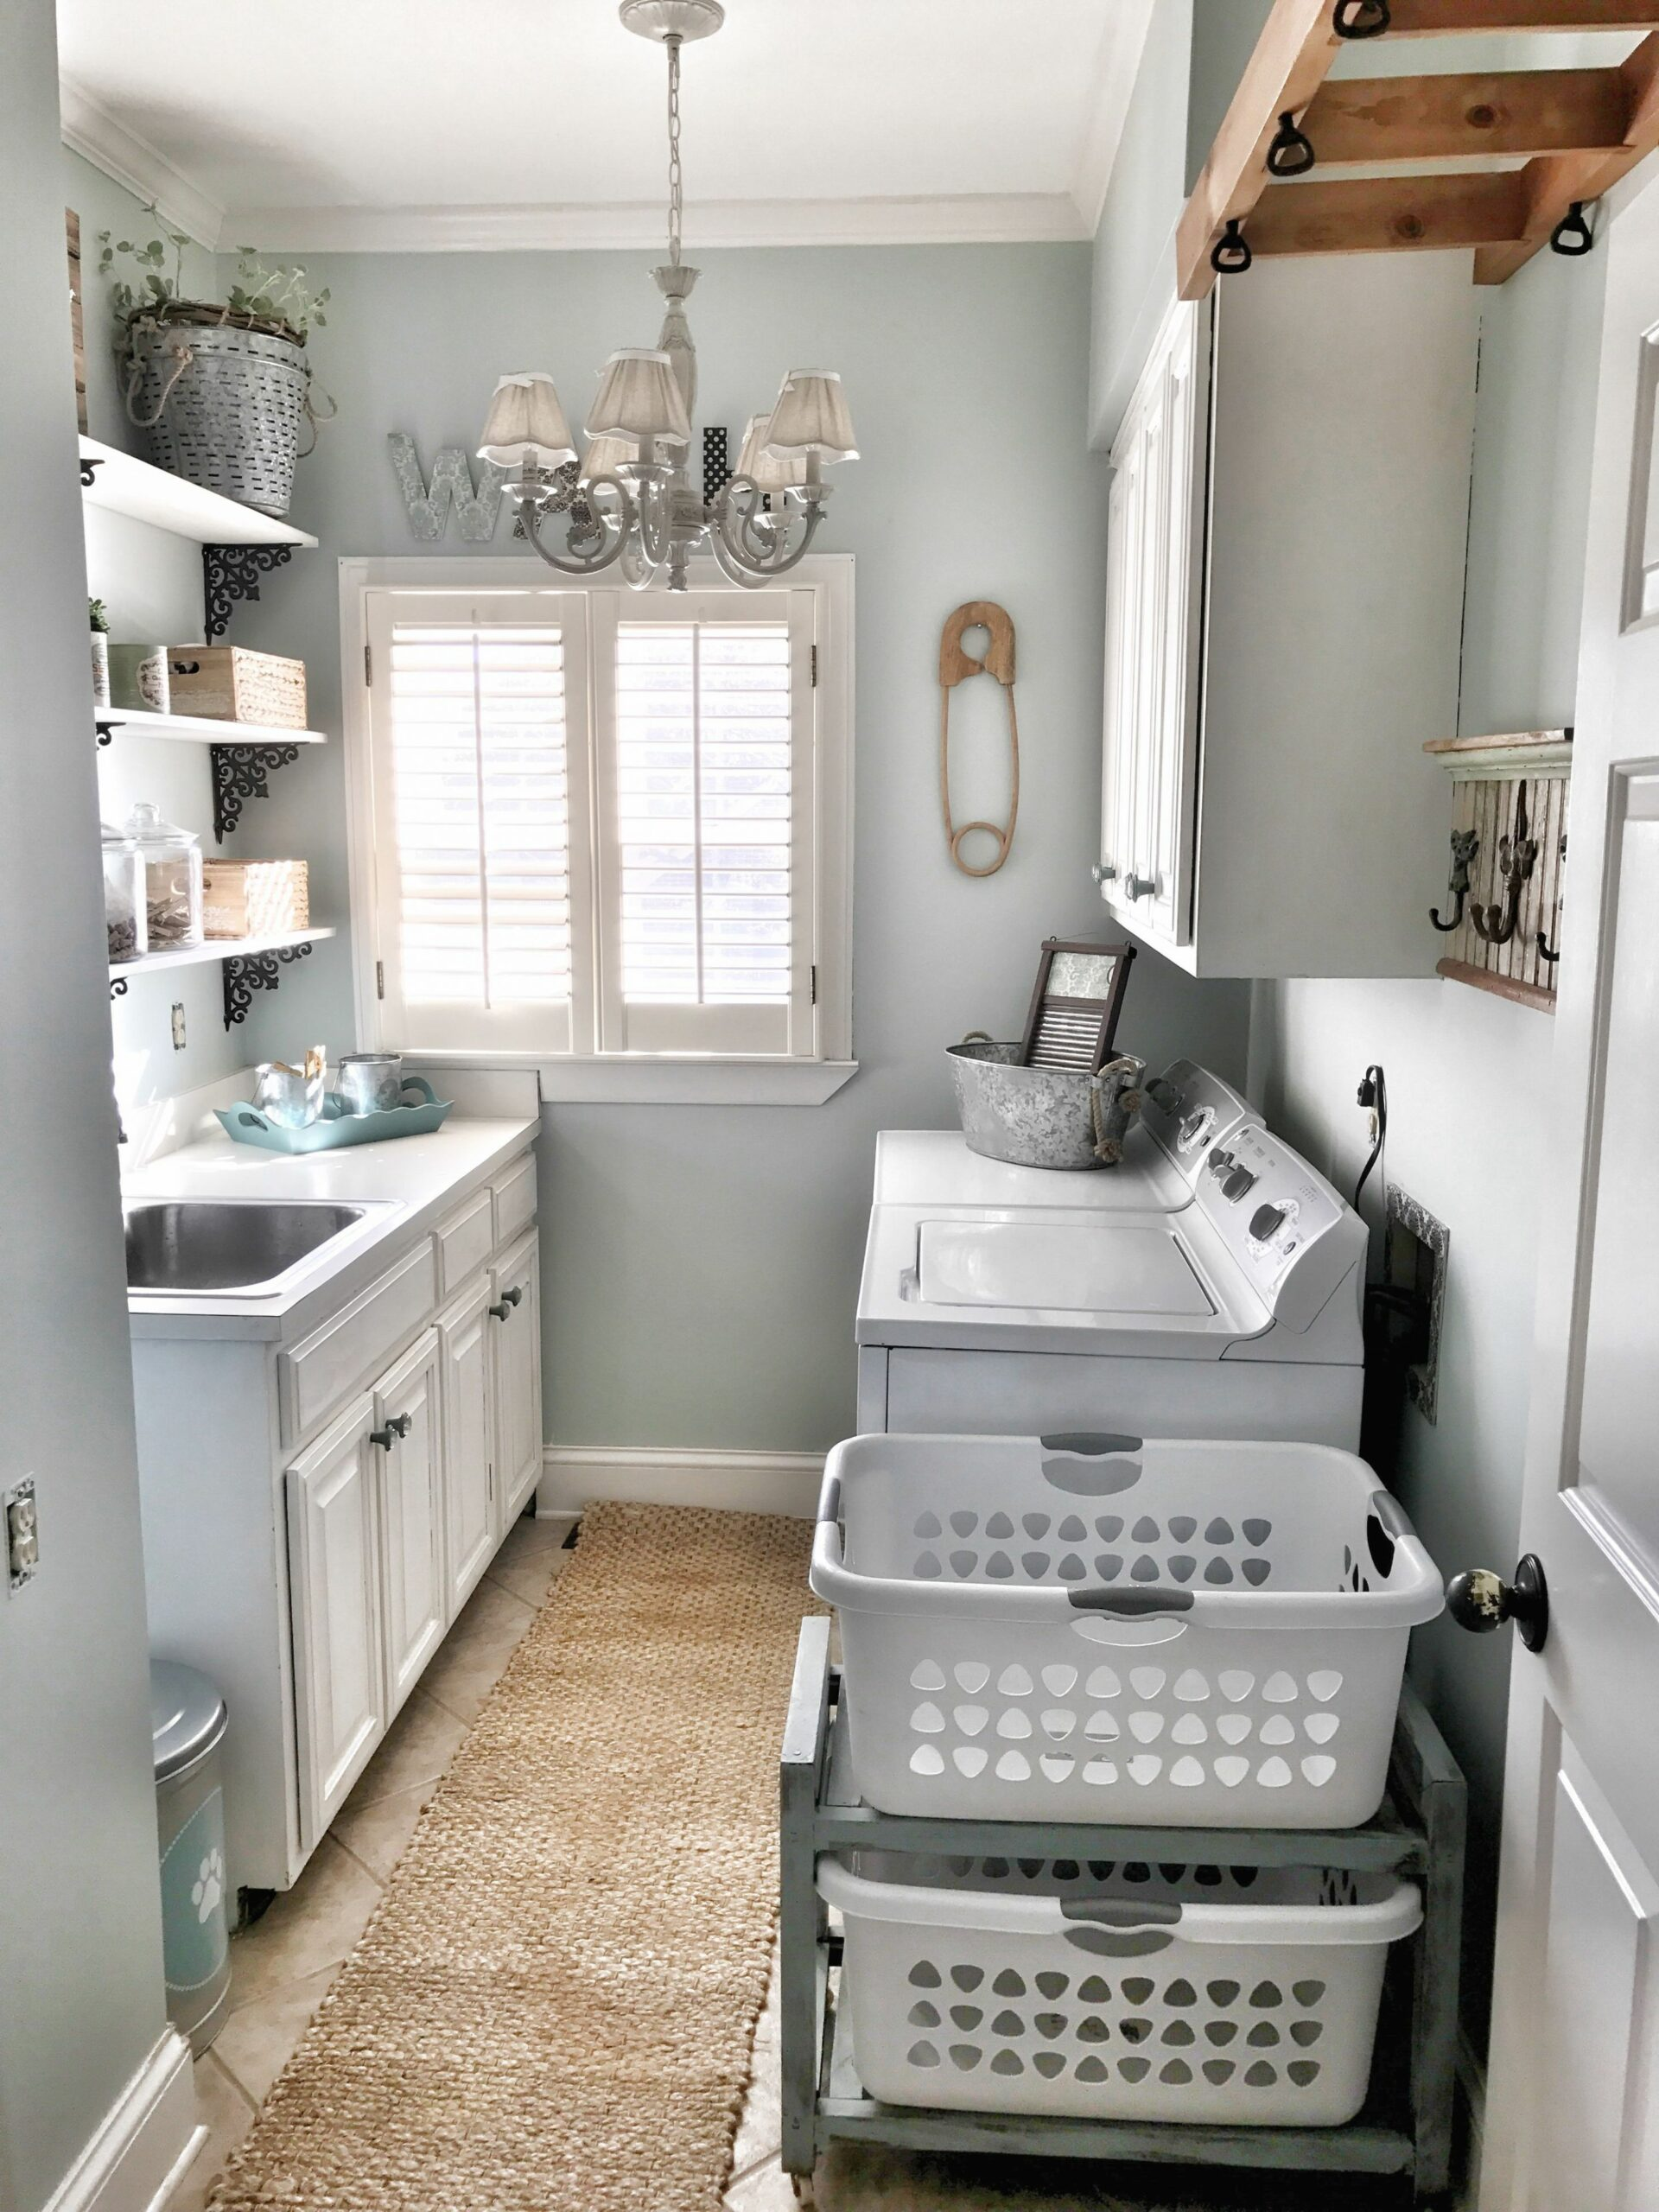 9 Laundry Room Ideas, Worry-freeing Your Irking Chore | Laundry ...